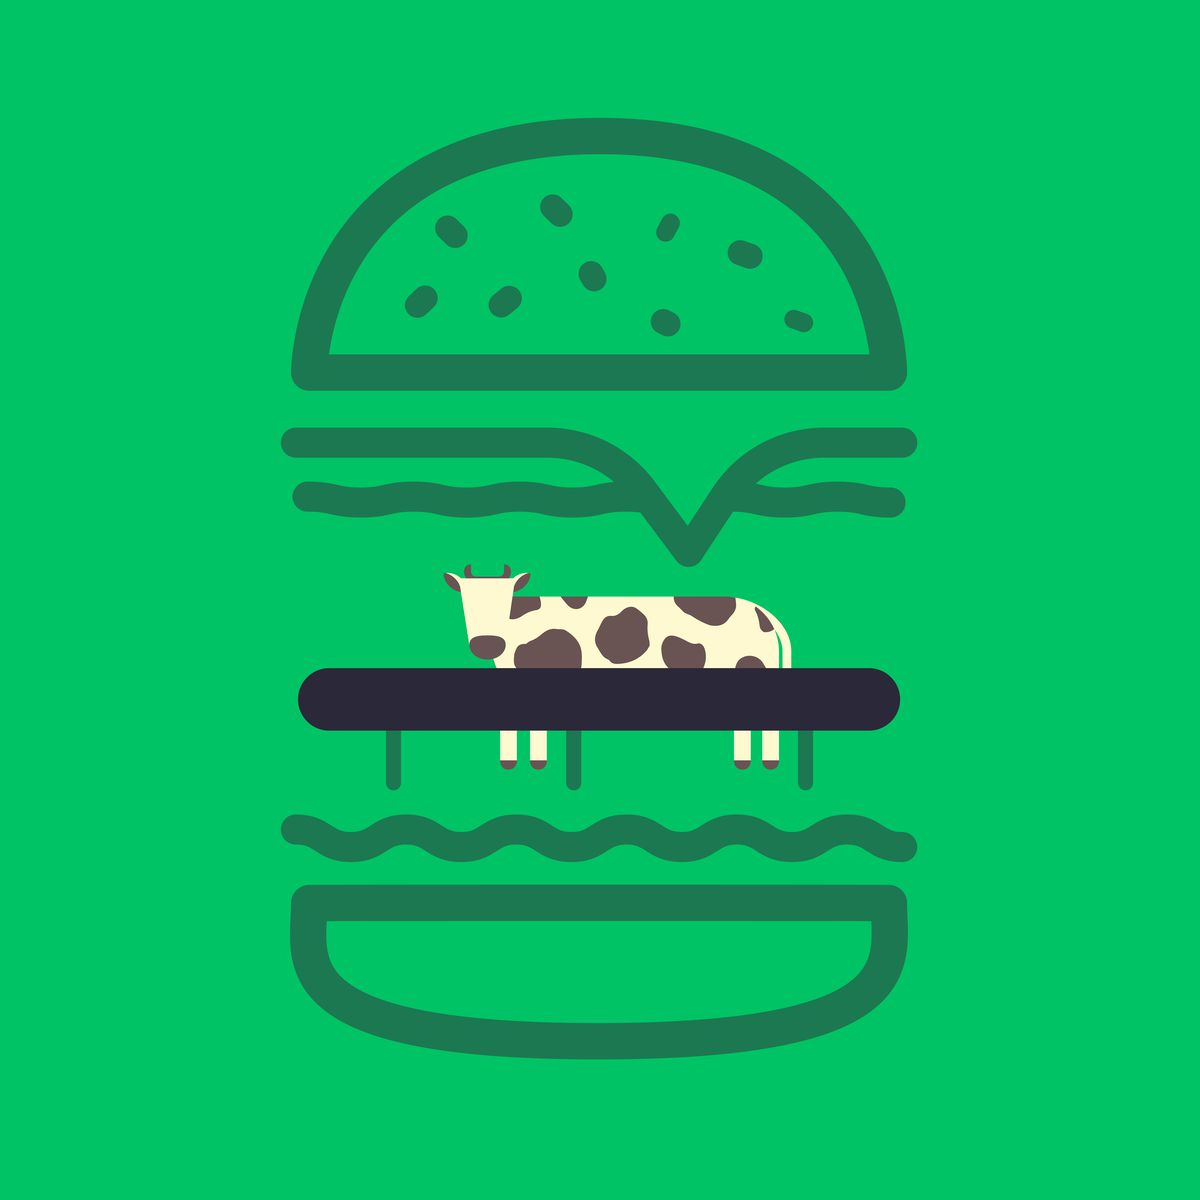 Illustration of a cow in front of a feeding trough within a burger bun.